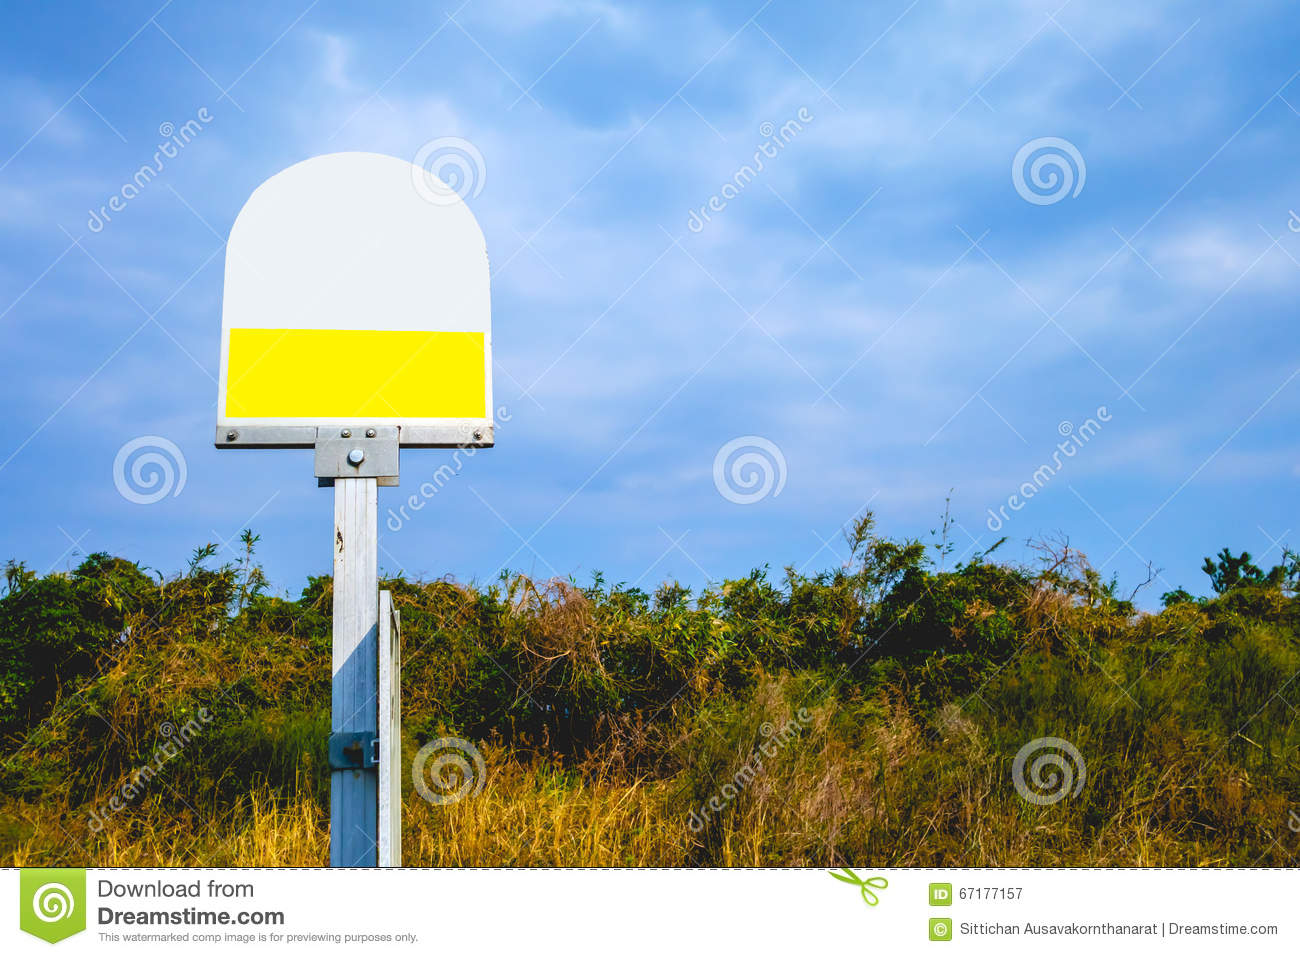 Bus stop sign in the blue sky